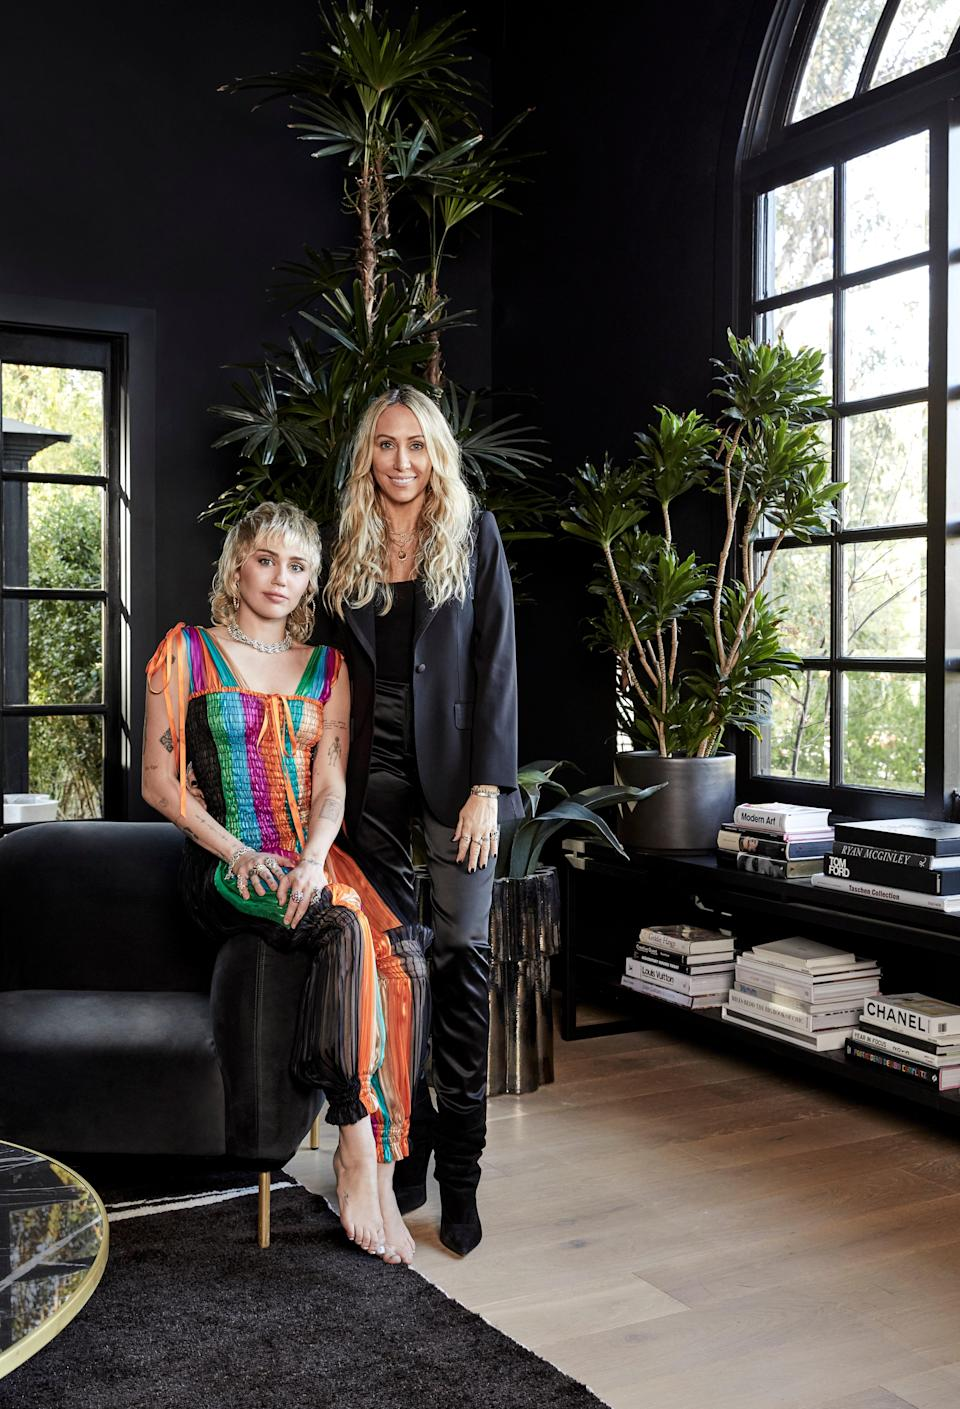 """We tried to keep the actual structure of the house simple, so that the furniture, the heart, the accessories, the photographs, they can really talk,"" says Miley, in vintage Yves Saint Laurent. Tish wears a Dolce & Gabbana jacket and J. Gerard pants."